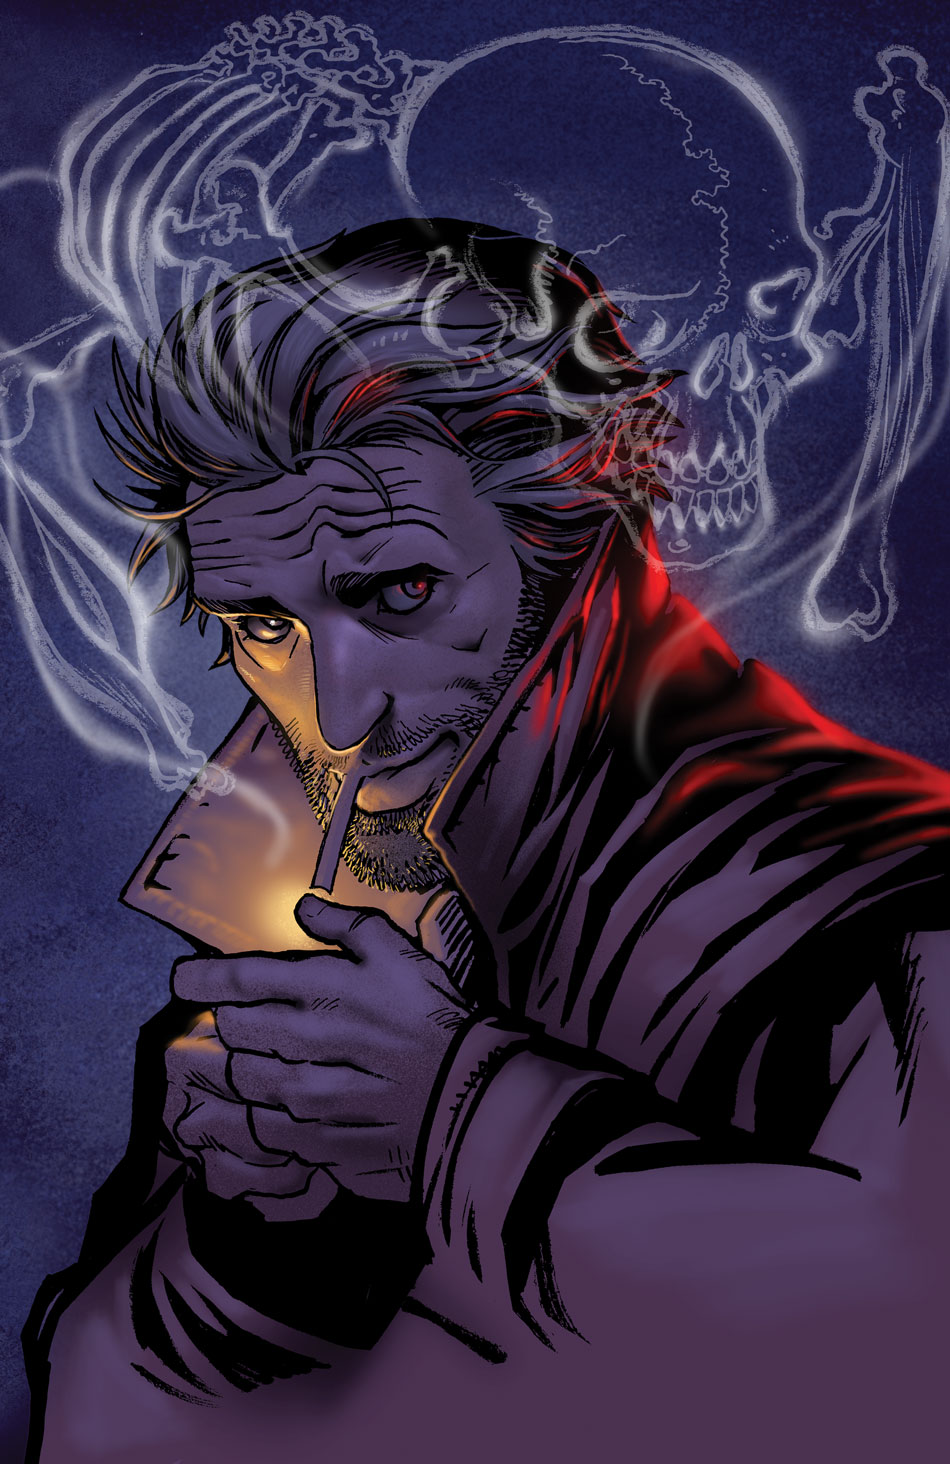 THE HELLBLAZER: REBIRTH #1 cover